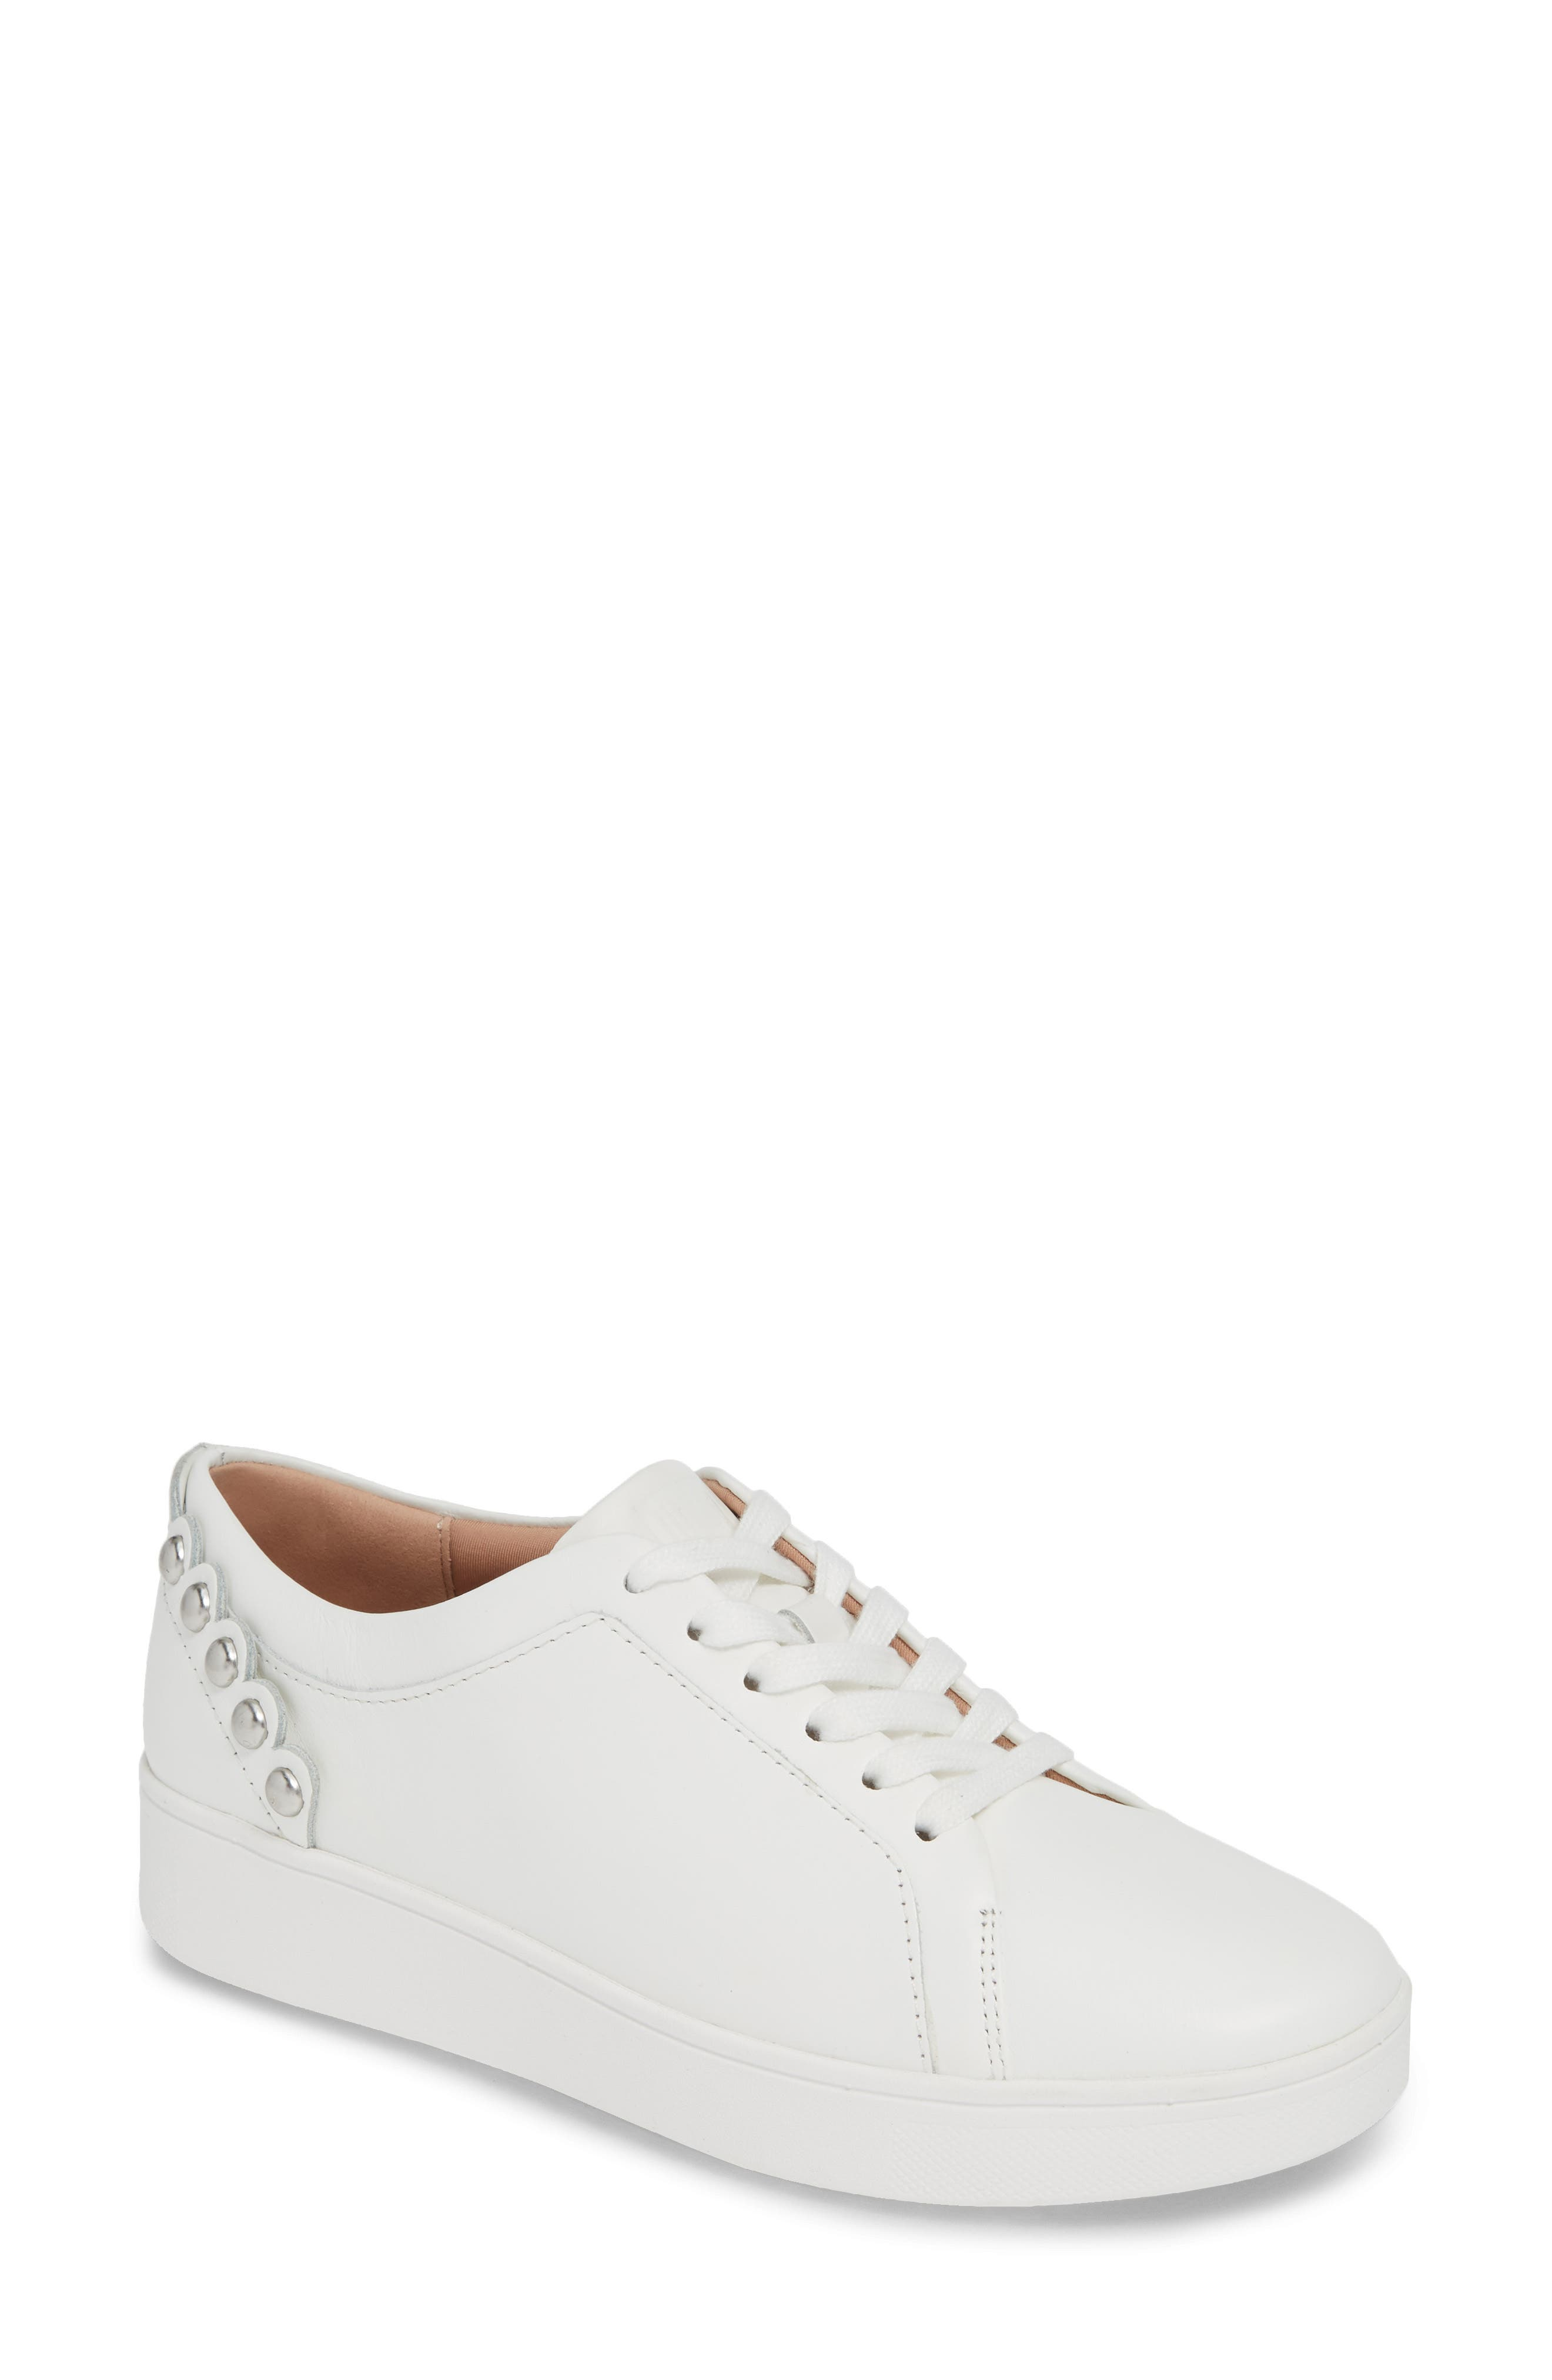 FITFLOP, Rally Studded Sneaker, Main thumbnail 1, color, URBAN WHITE LEATHER